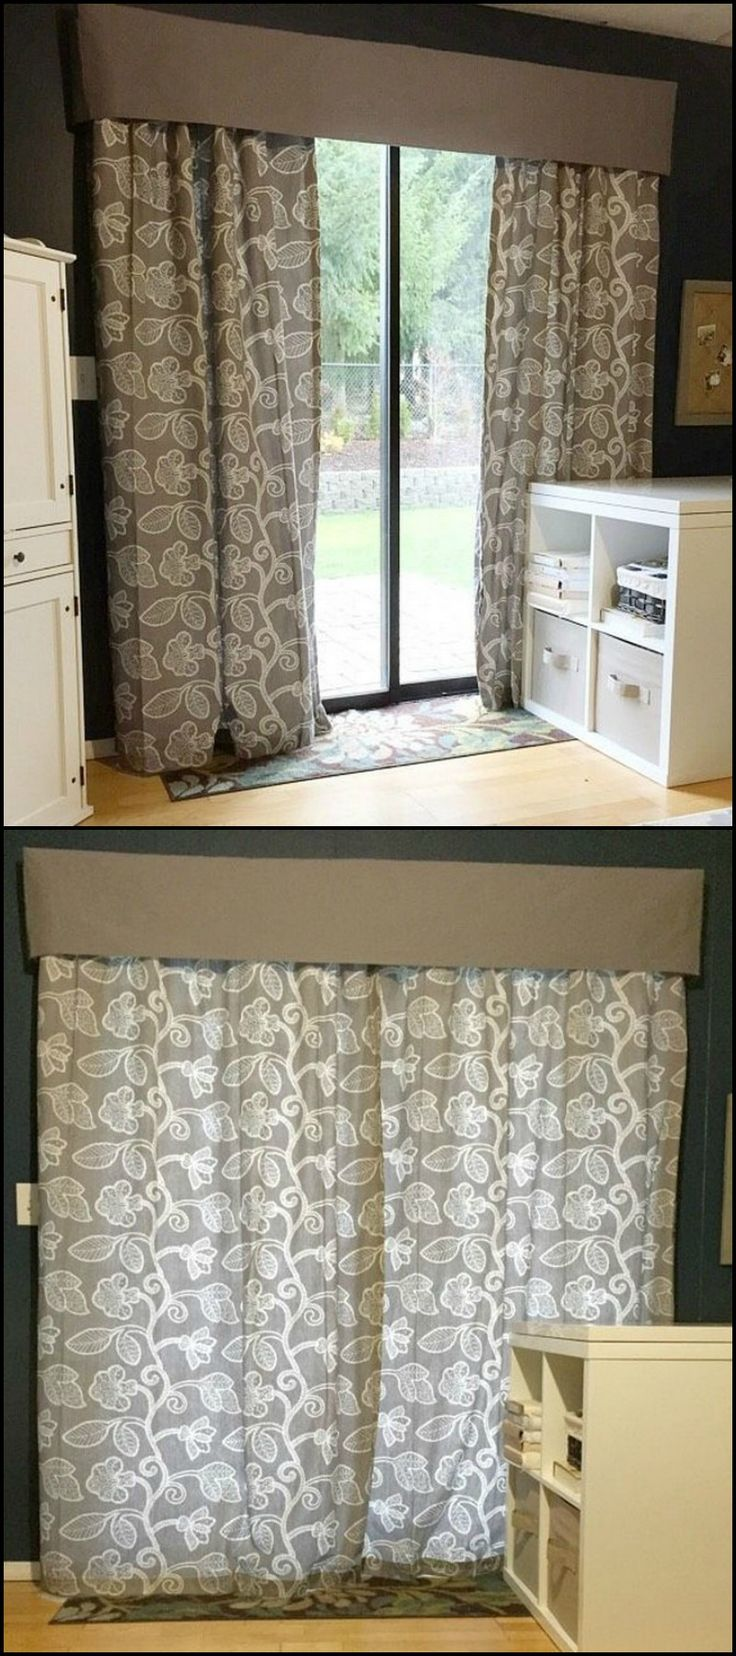 Lower your energy bill with DIY insulated curtains! http://theownerbuildernetwork.co/cjit These curtains were made for keeping the owner's home warm during the past winter season, but they are also helpful in preventing cool air escaping during the summer! It's a simple little measure that definitely makes a difference. Want to lessen your energy consumption? Learn how to do it now!